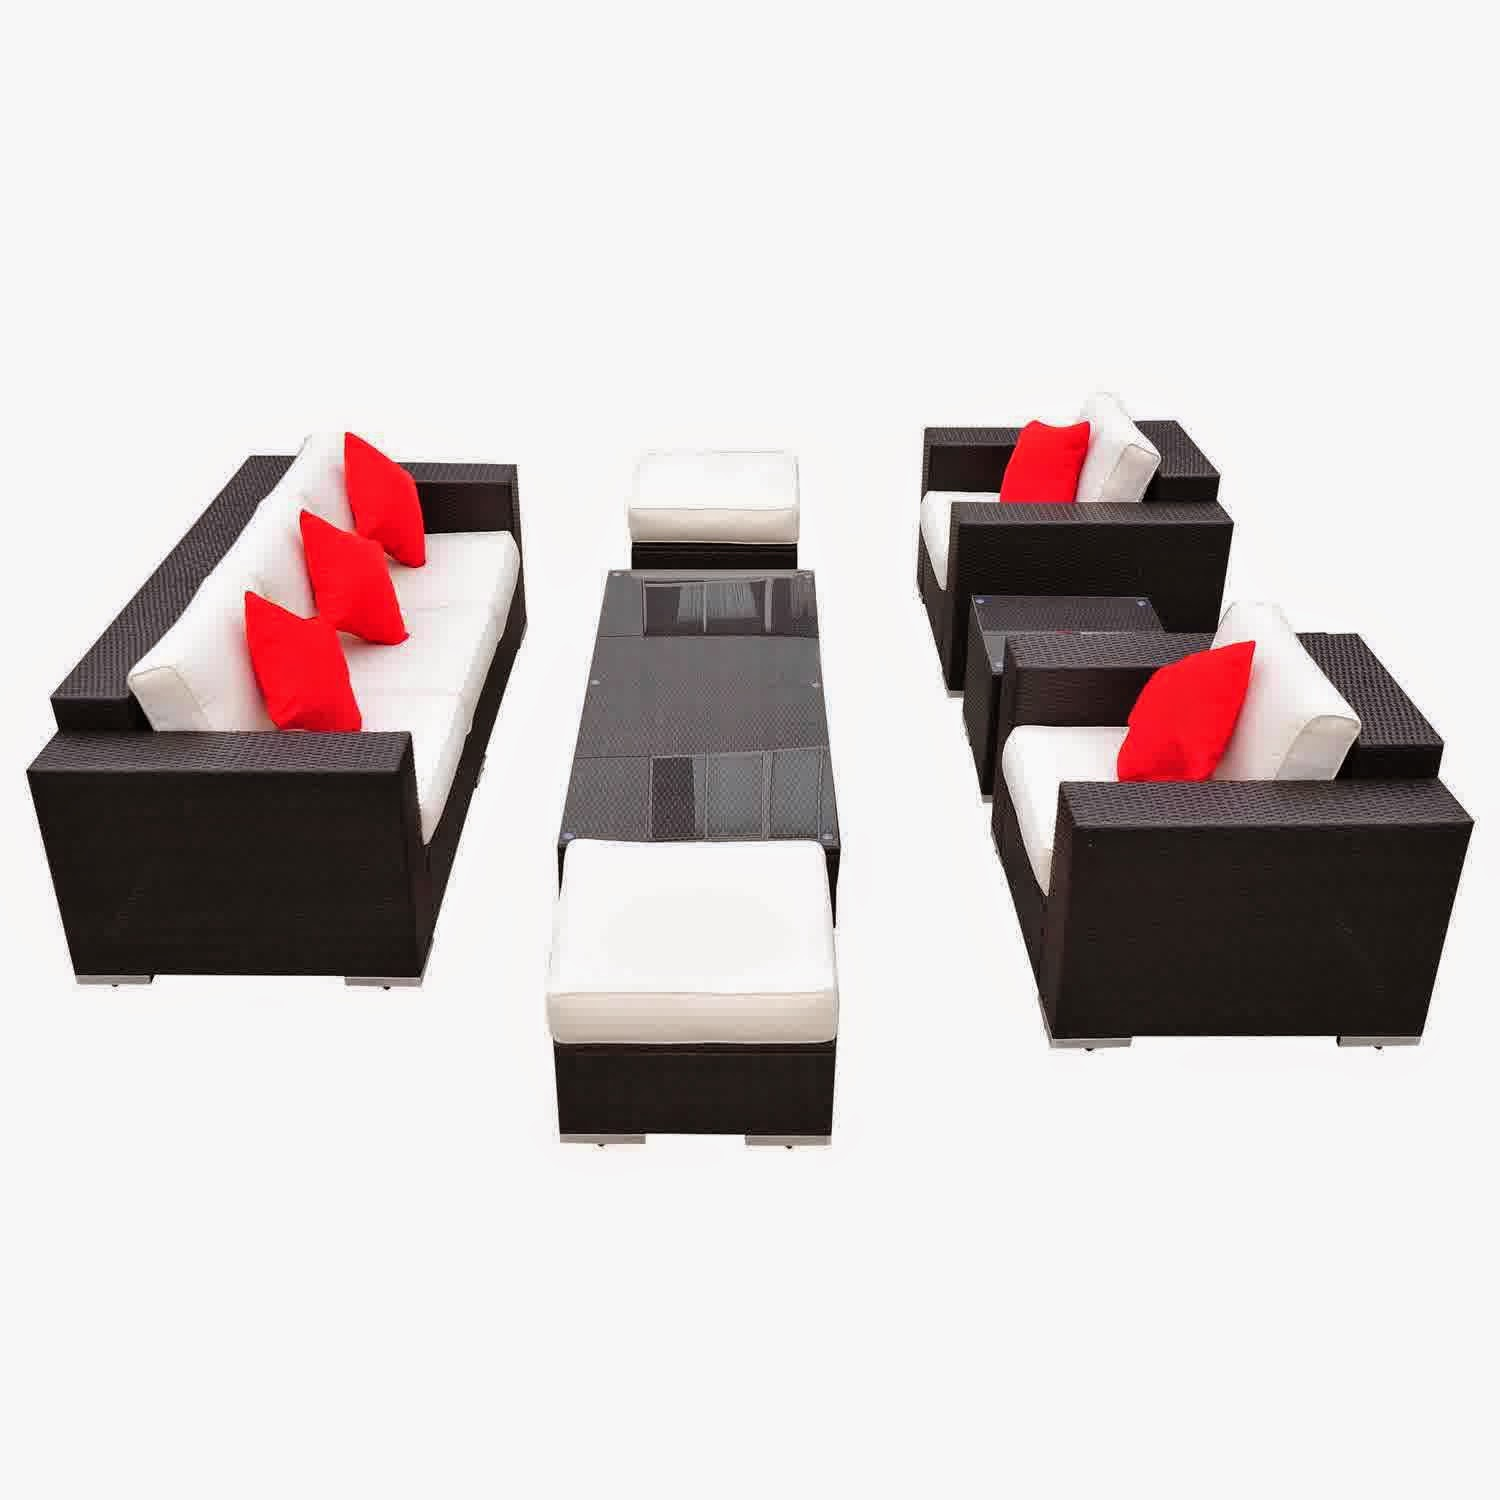 Outsunny 7pc PE Rattan Wicker Sectional Patio Sofa Furniture Set